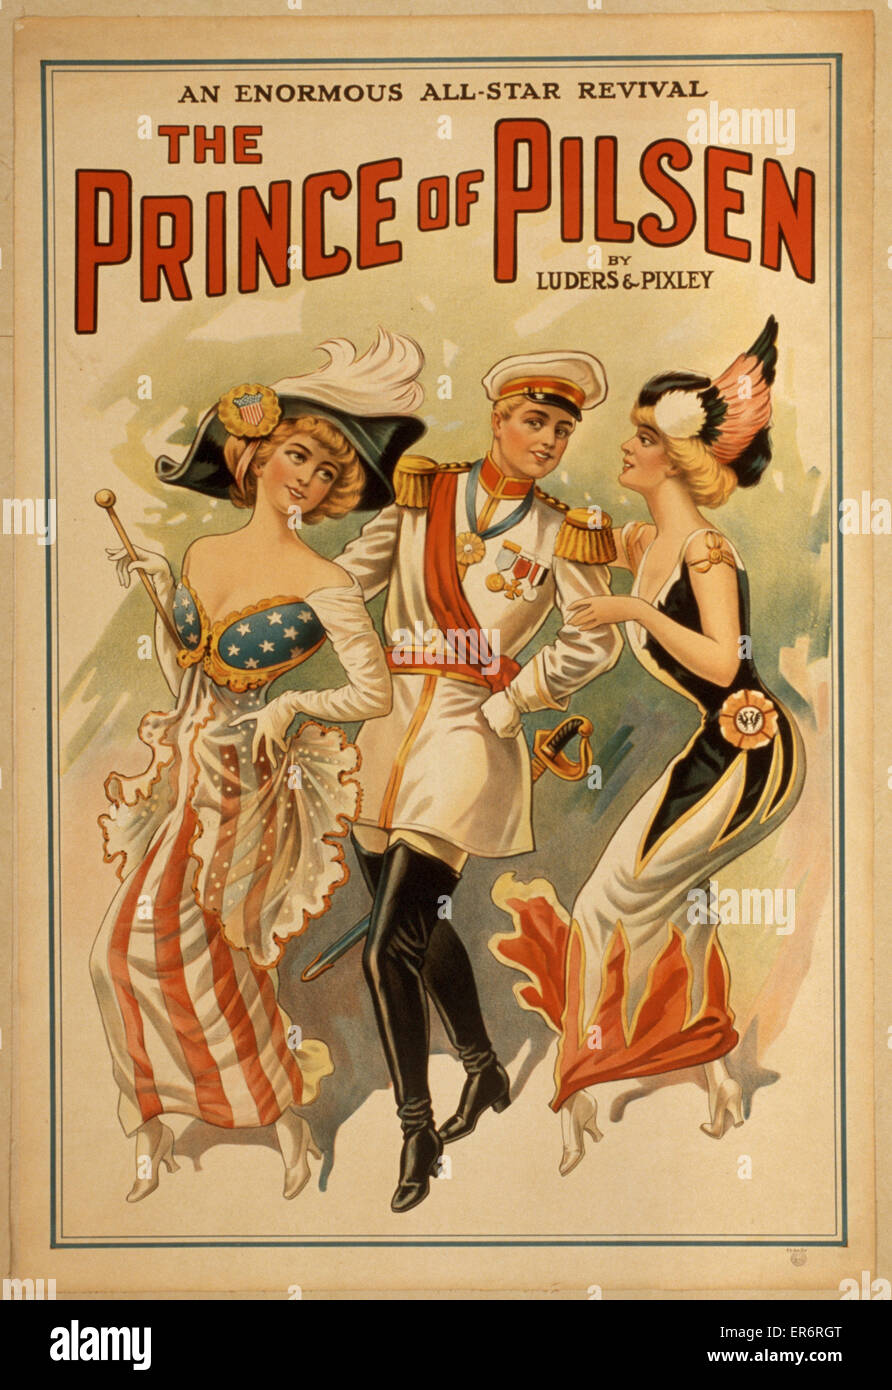 The Prince of Pilsen by Luders & Pixley : an enormous all-star revival. Date 19 - ?. - Stock Image